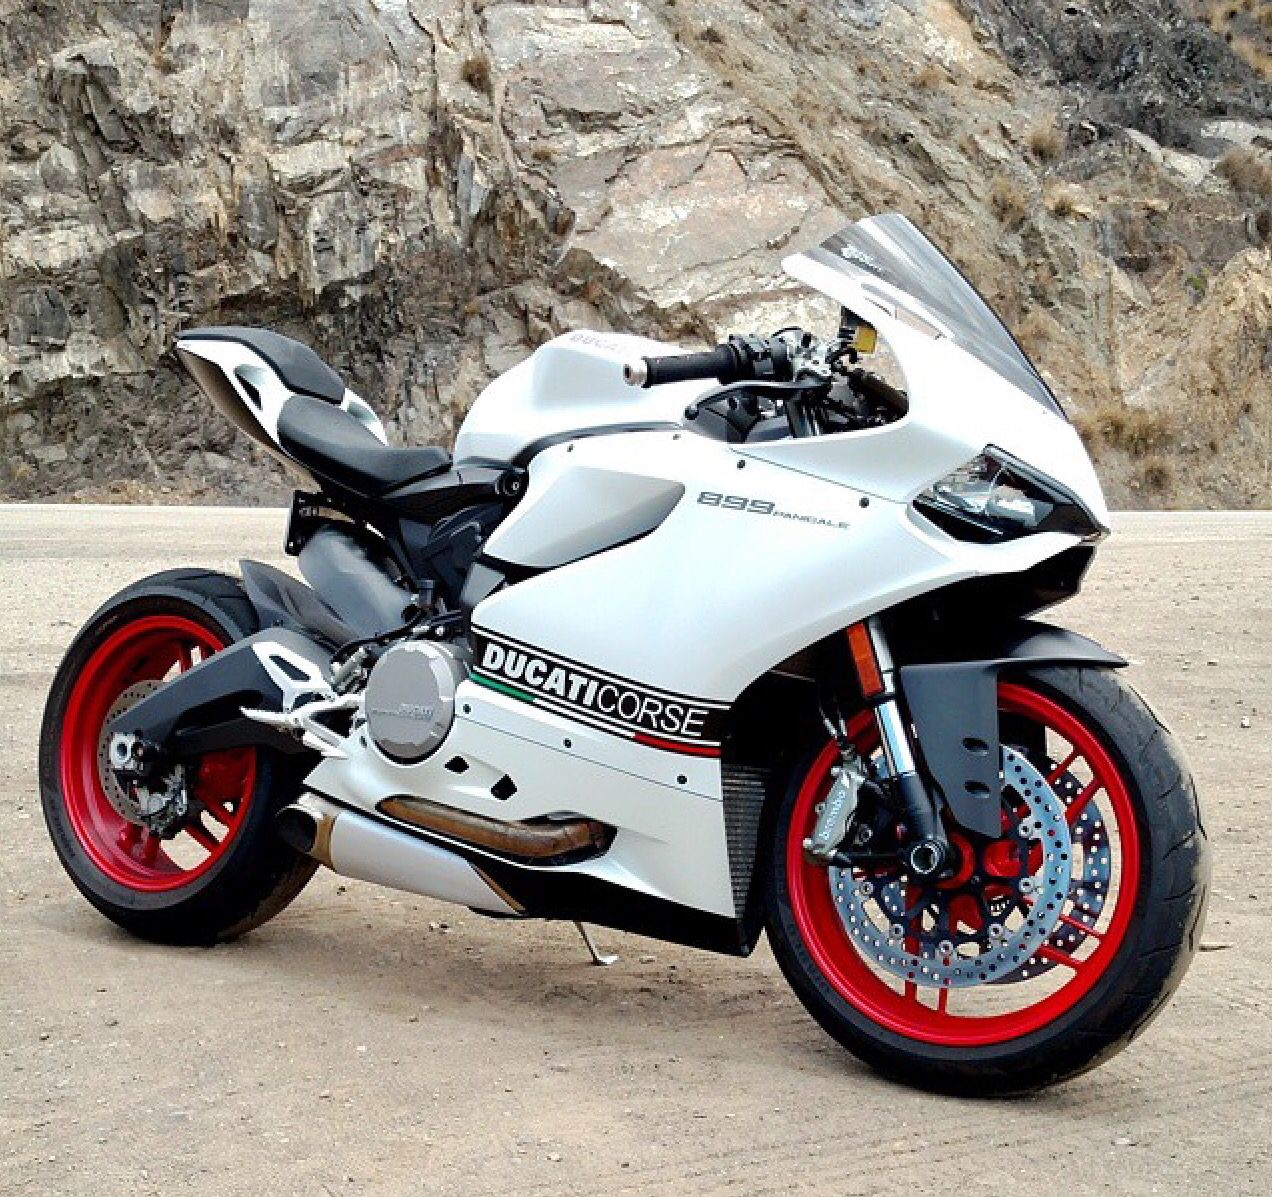 Ducati Motorcycles Images